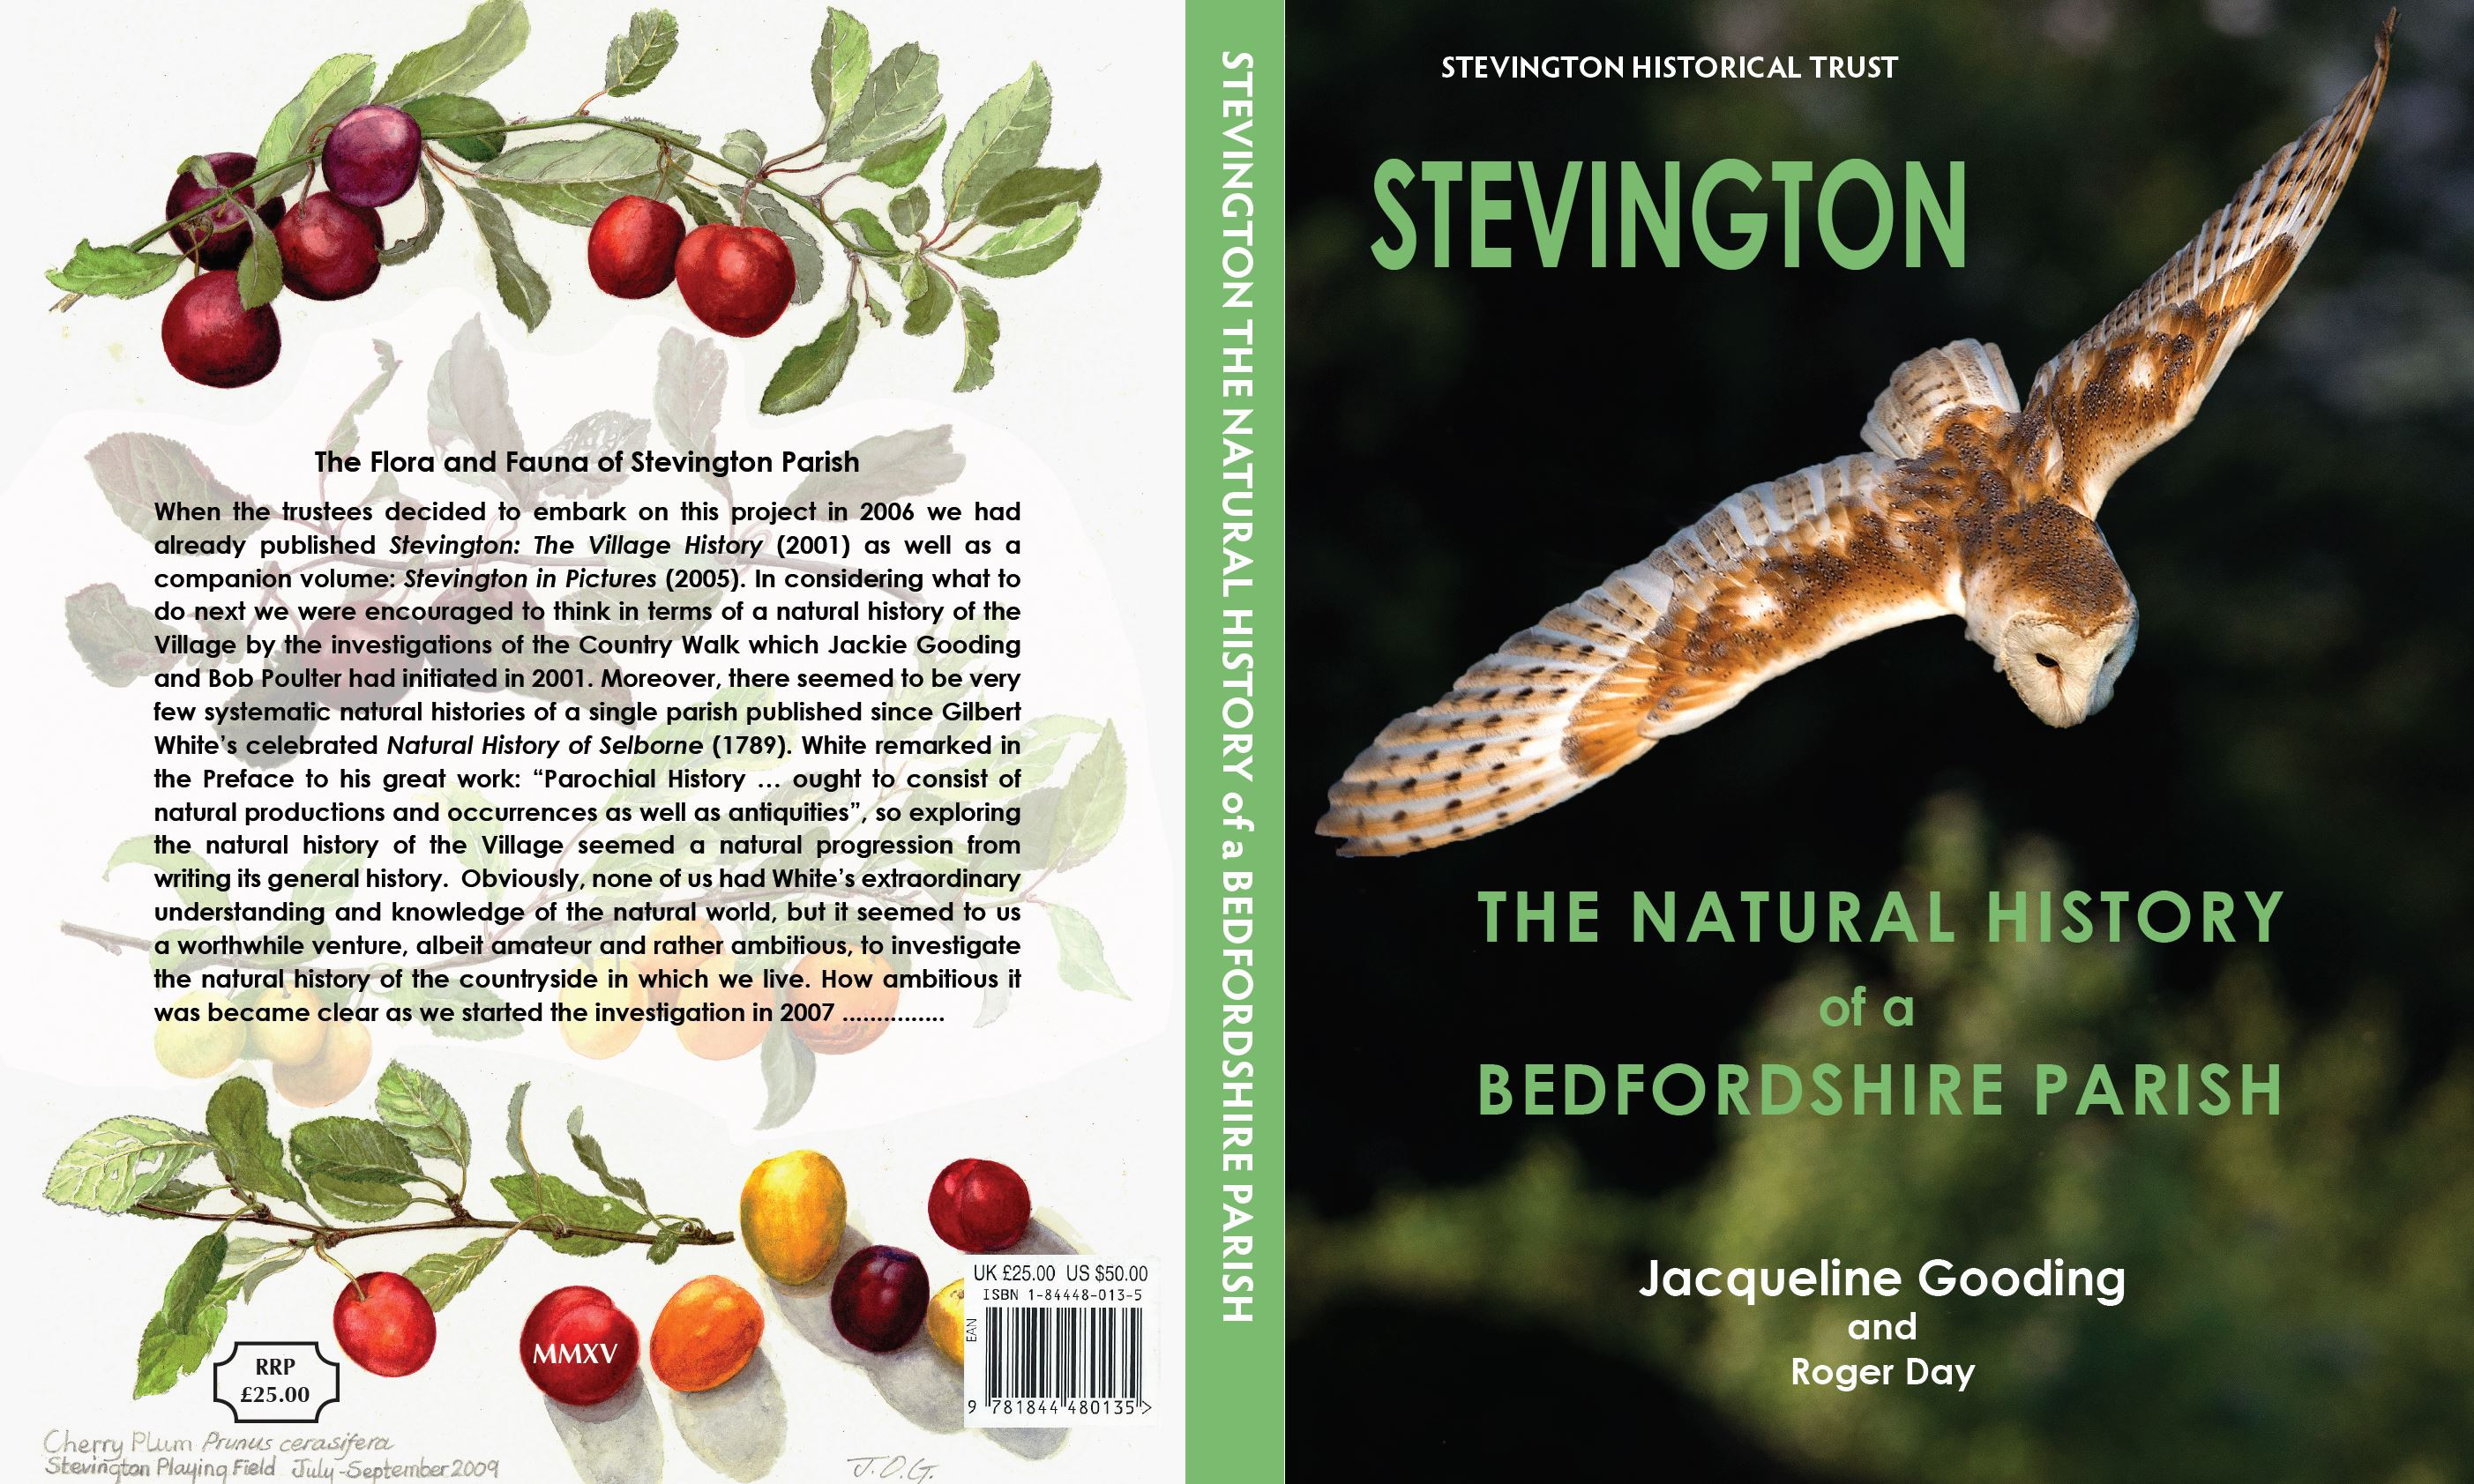 Stevington Book Cover SNH 1 Feb